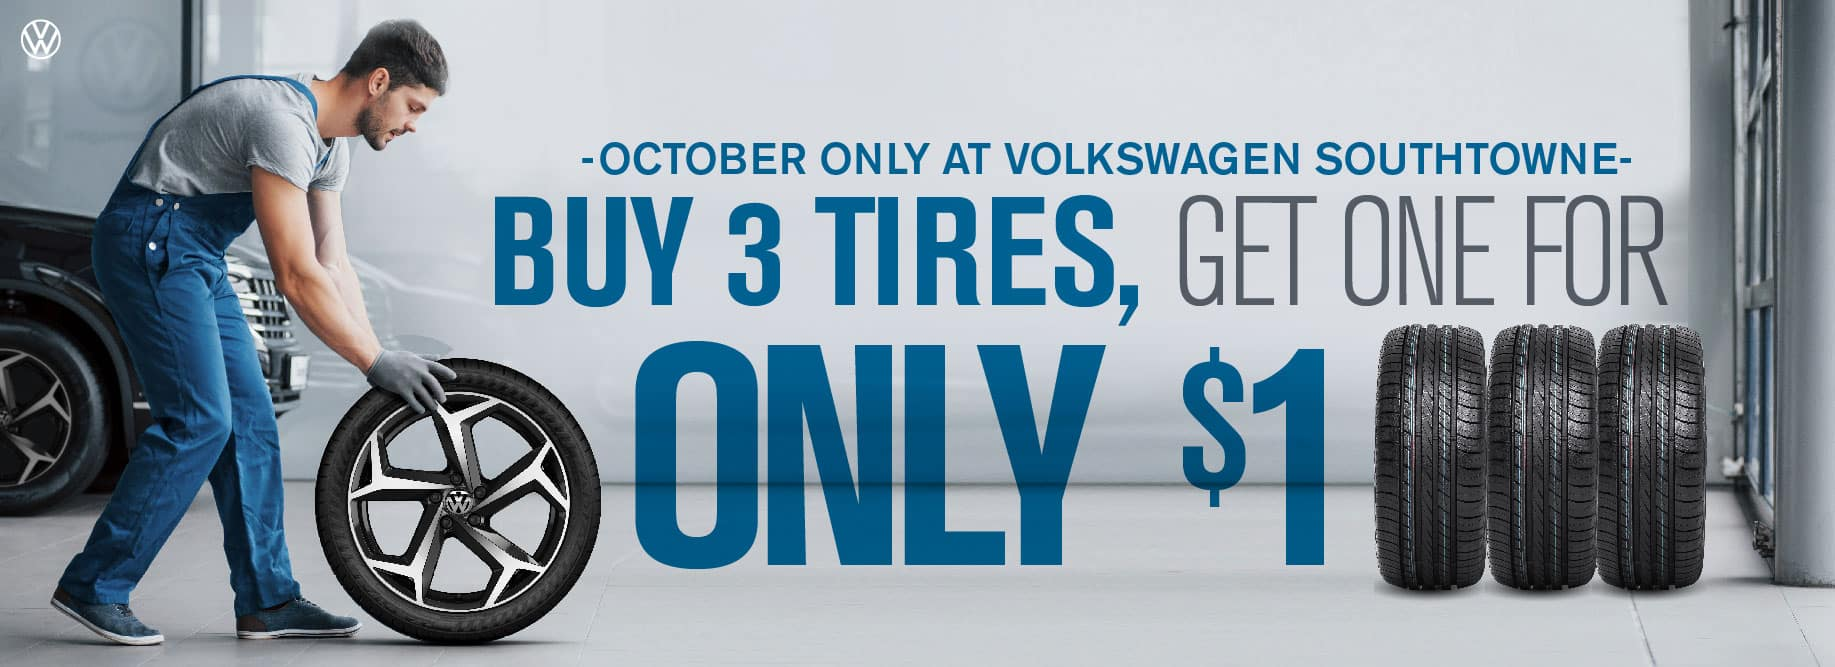 Buy 3 Tires get one for $1 at VW SouthTowne